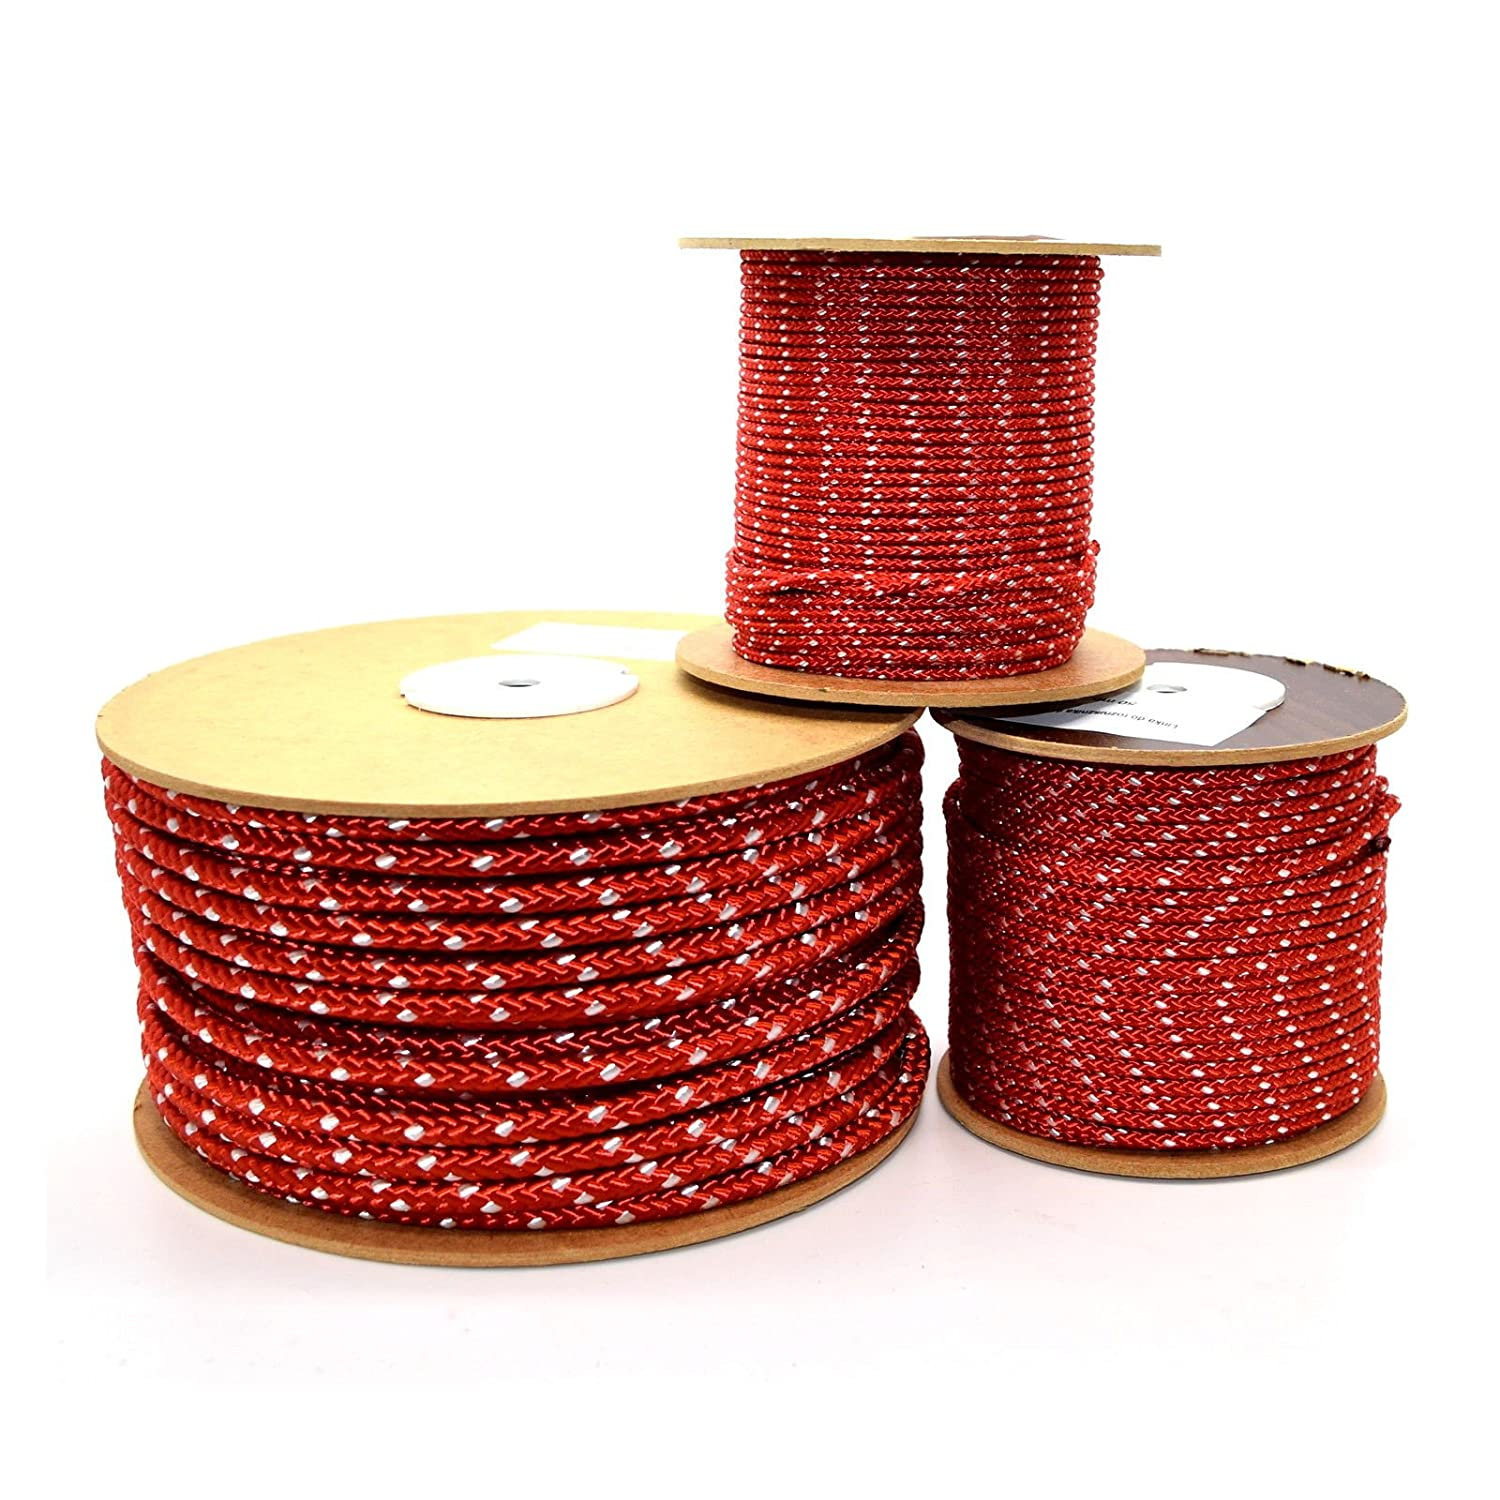 3mm Pull Starter Cord Rope for Lawnmower Chainsaw Hayter Briggs Honda Engine (Red, 2m) Sola